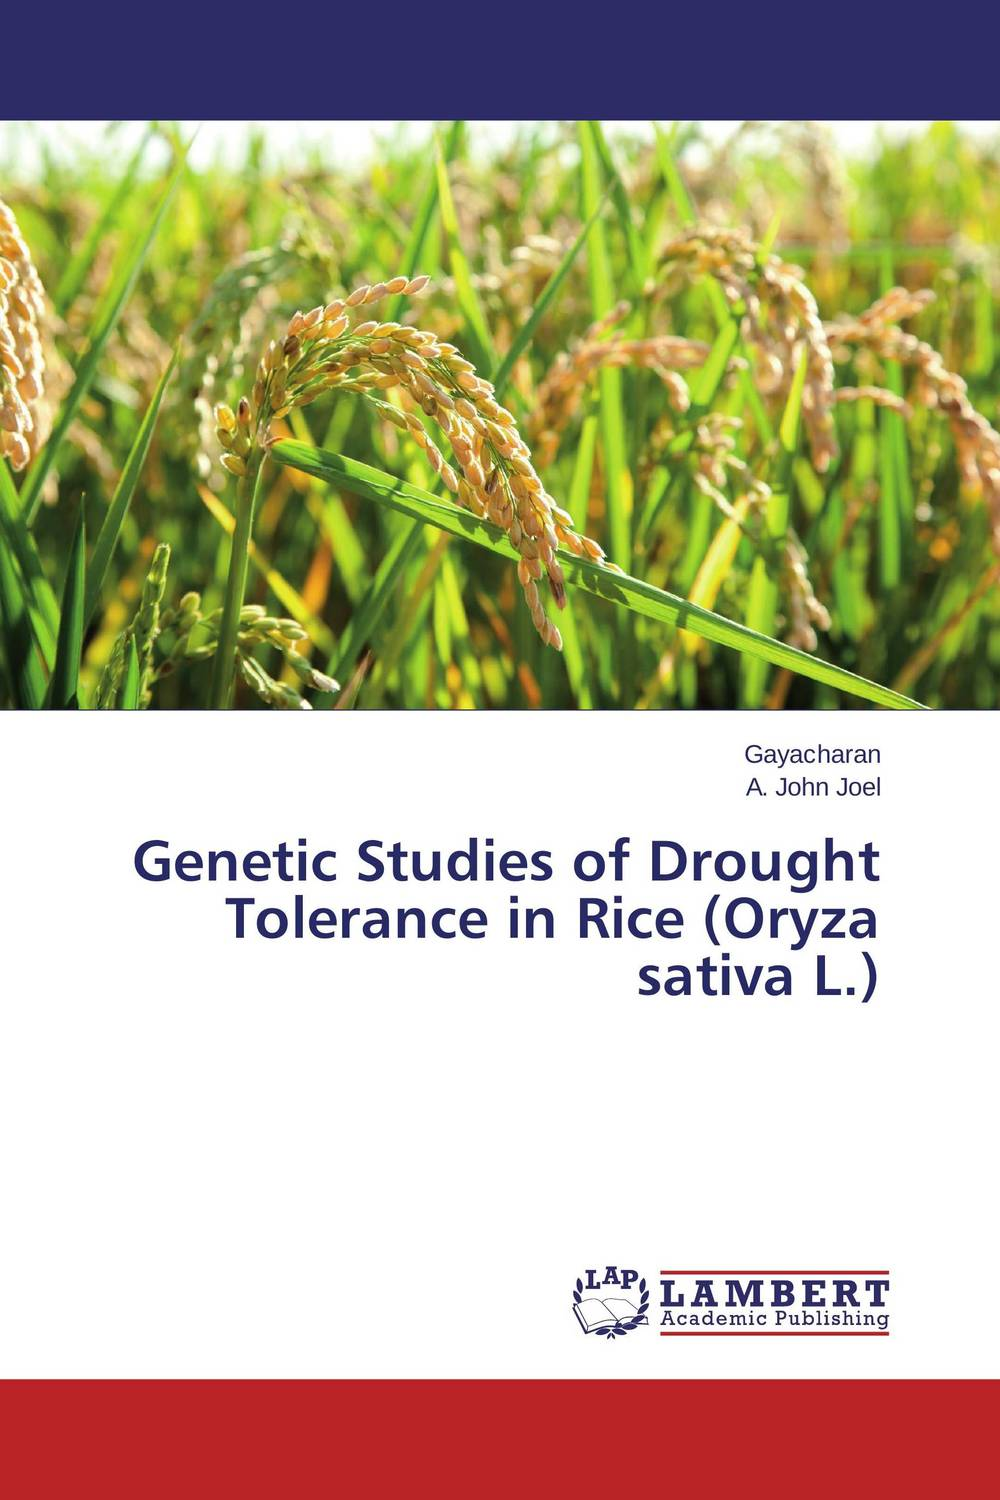 Genetic Studies of Drought Tolerance in Rice (Oryza sativa L.) sanjeev kumar kiran pathania and pawan kumar sharma breeding of rice oryza sativa l